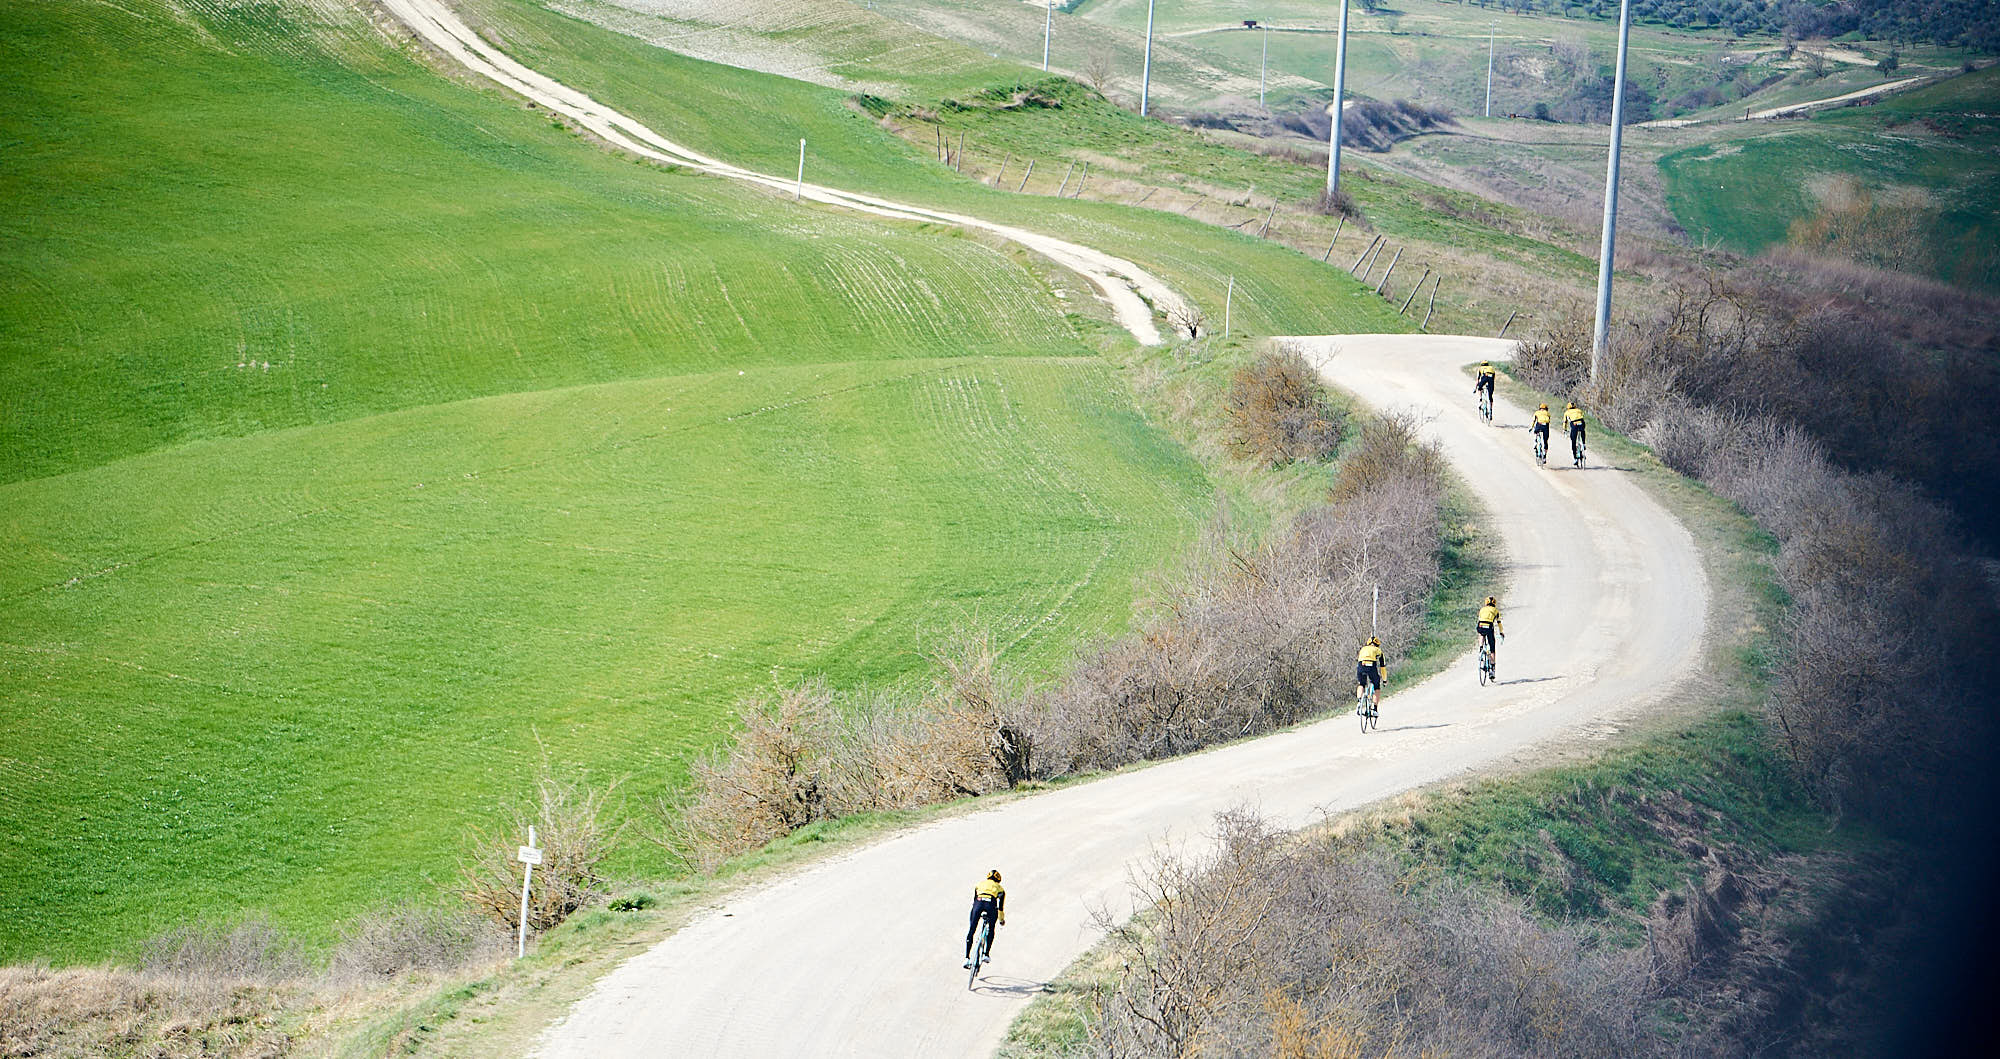 The Tuscan Strade Bianche